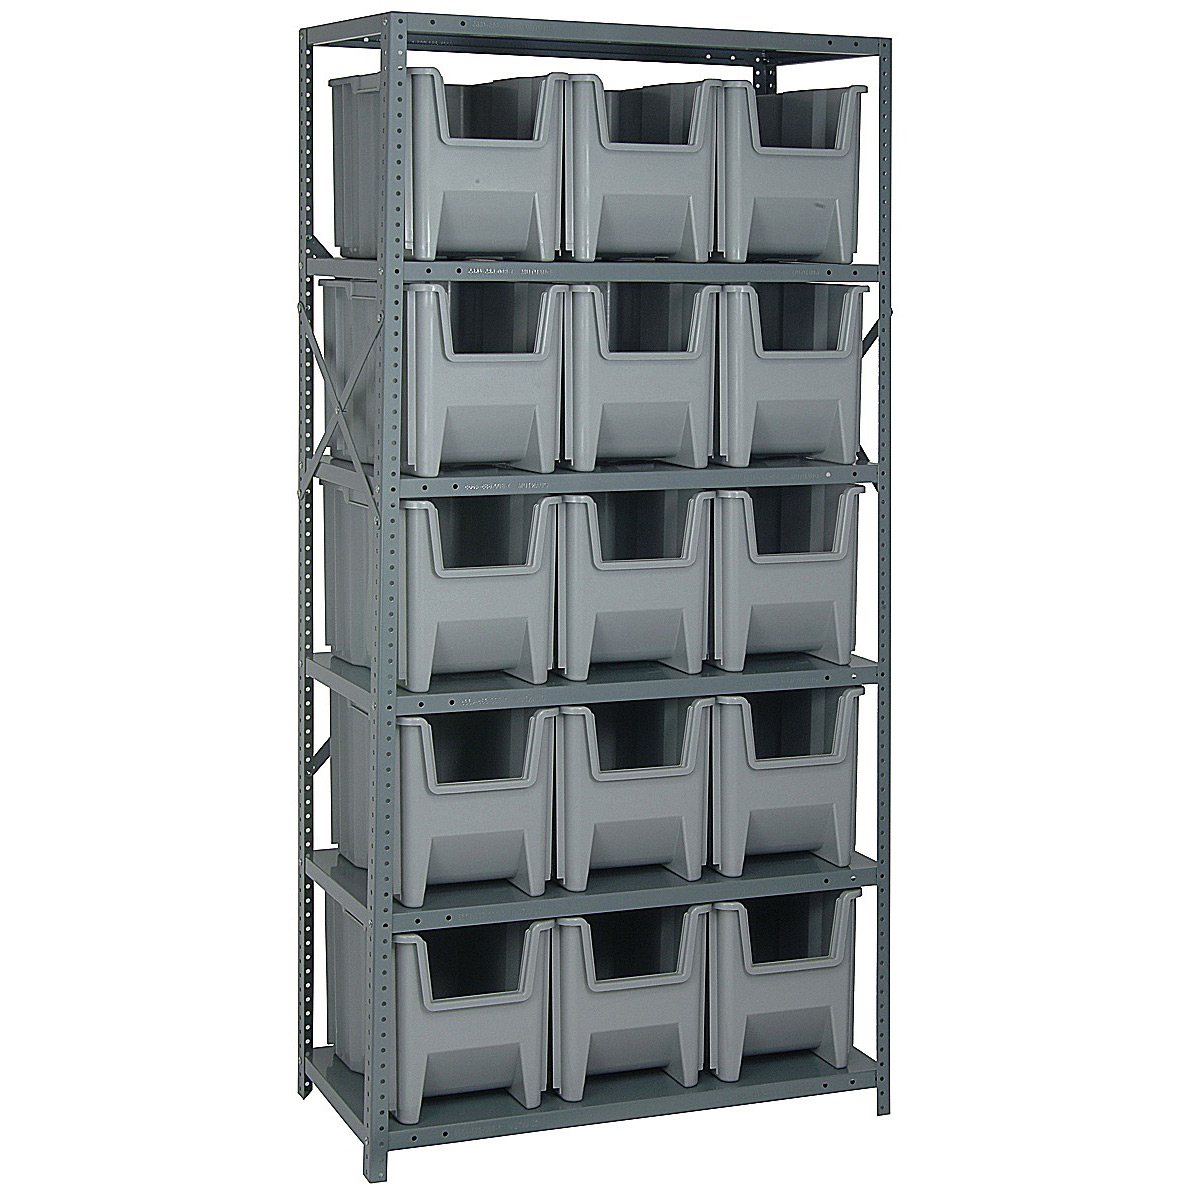 Pvc Storage System : Industrial storage shelf bin in plastic bins